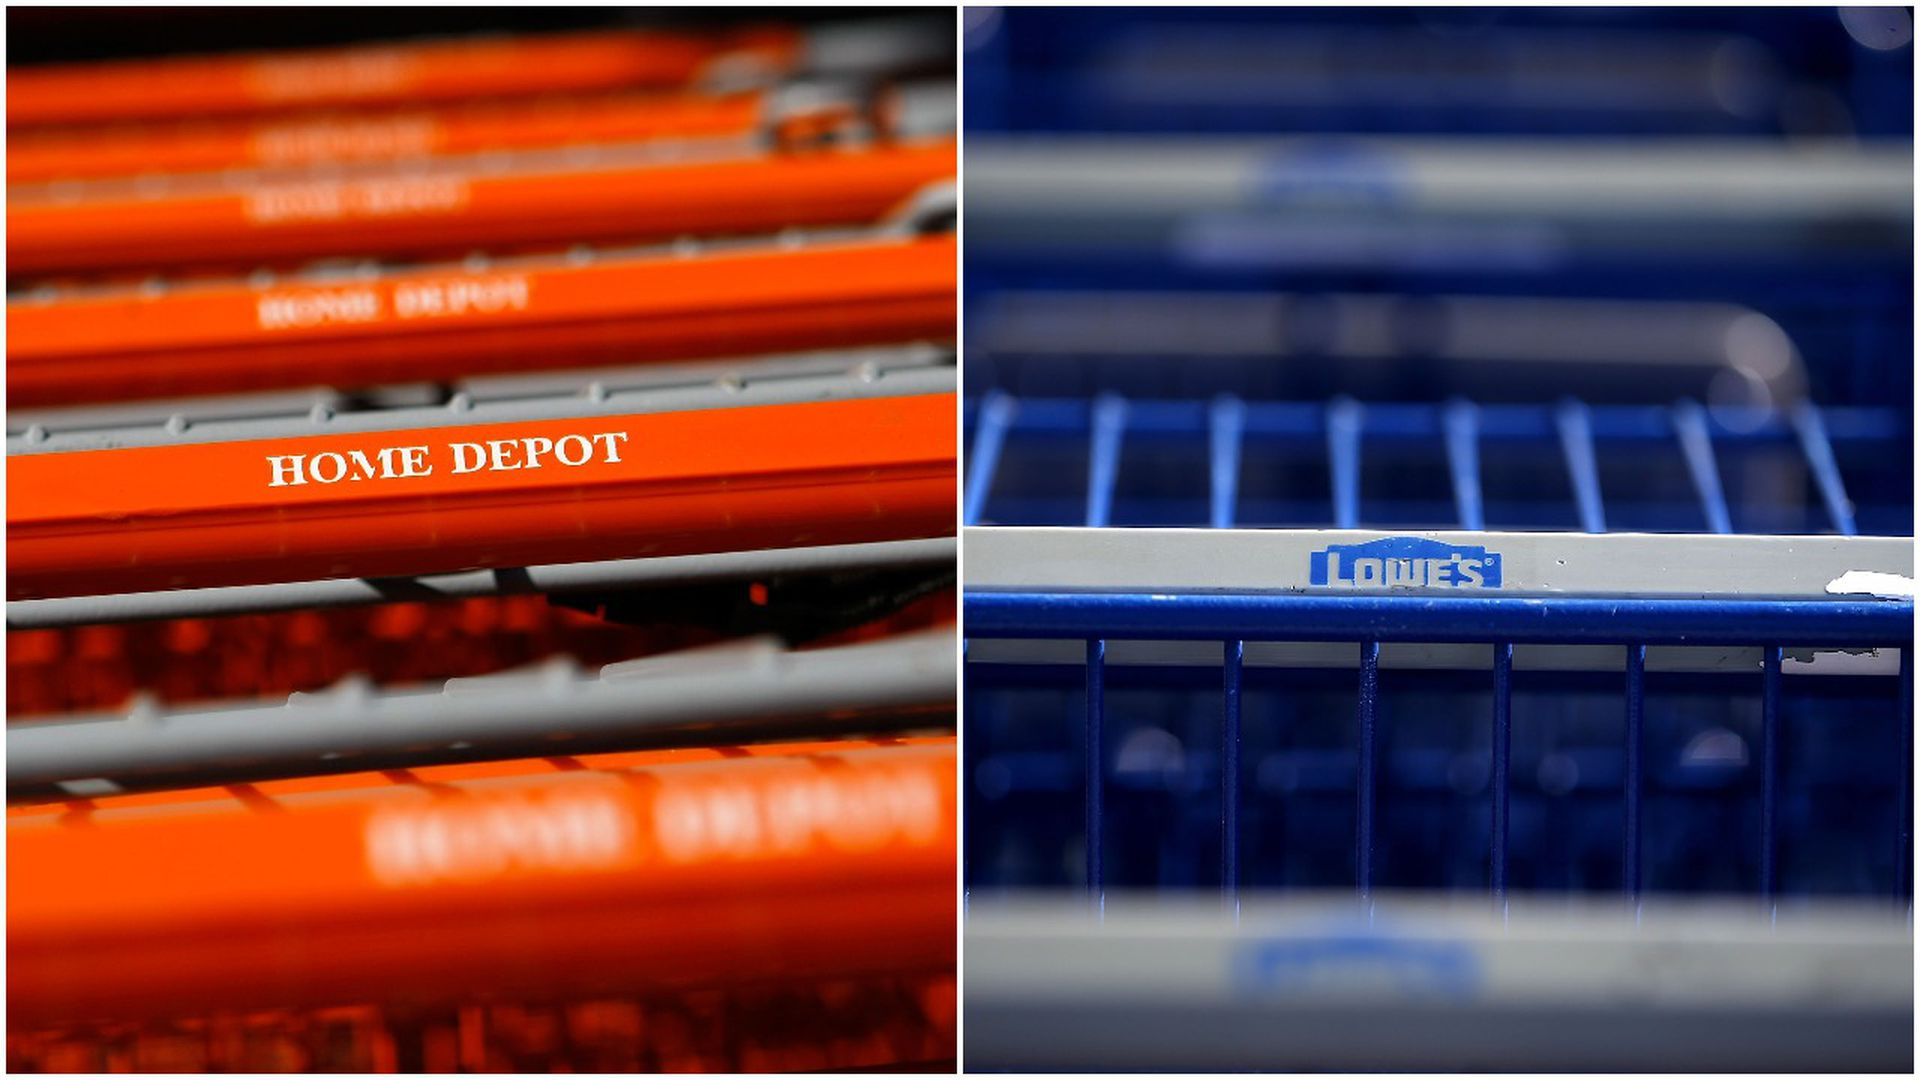 Home Depot & Lowe's carts